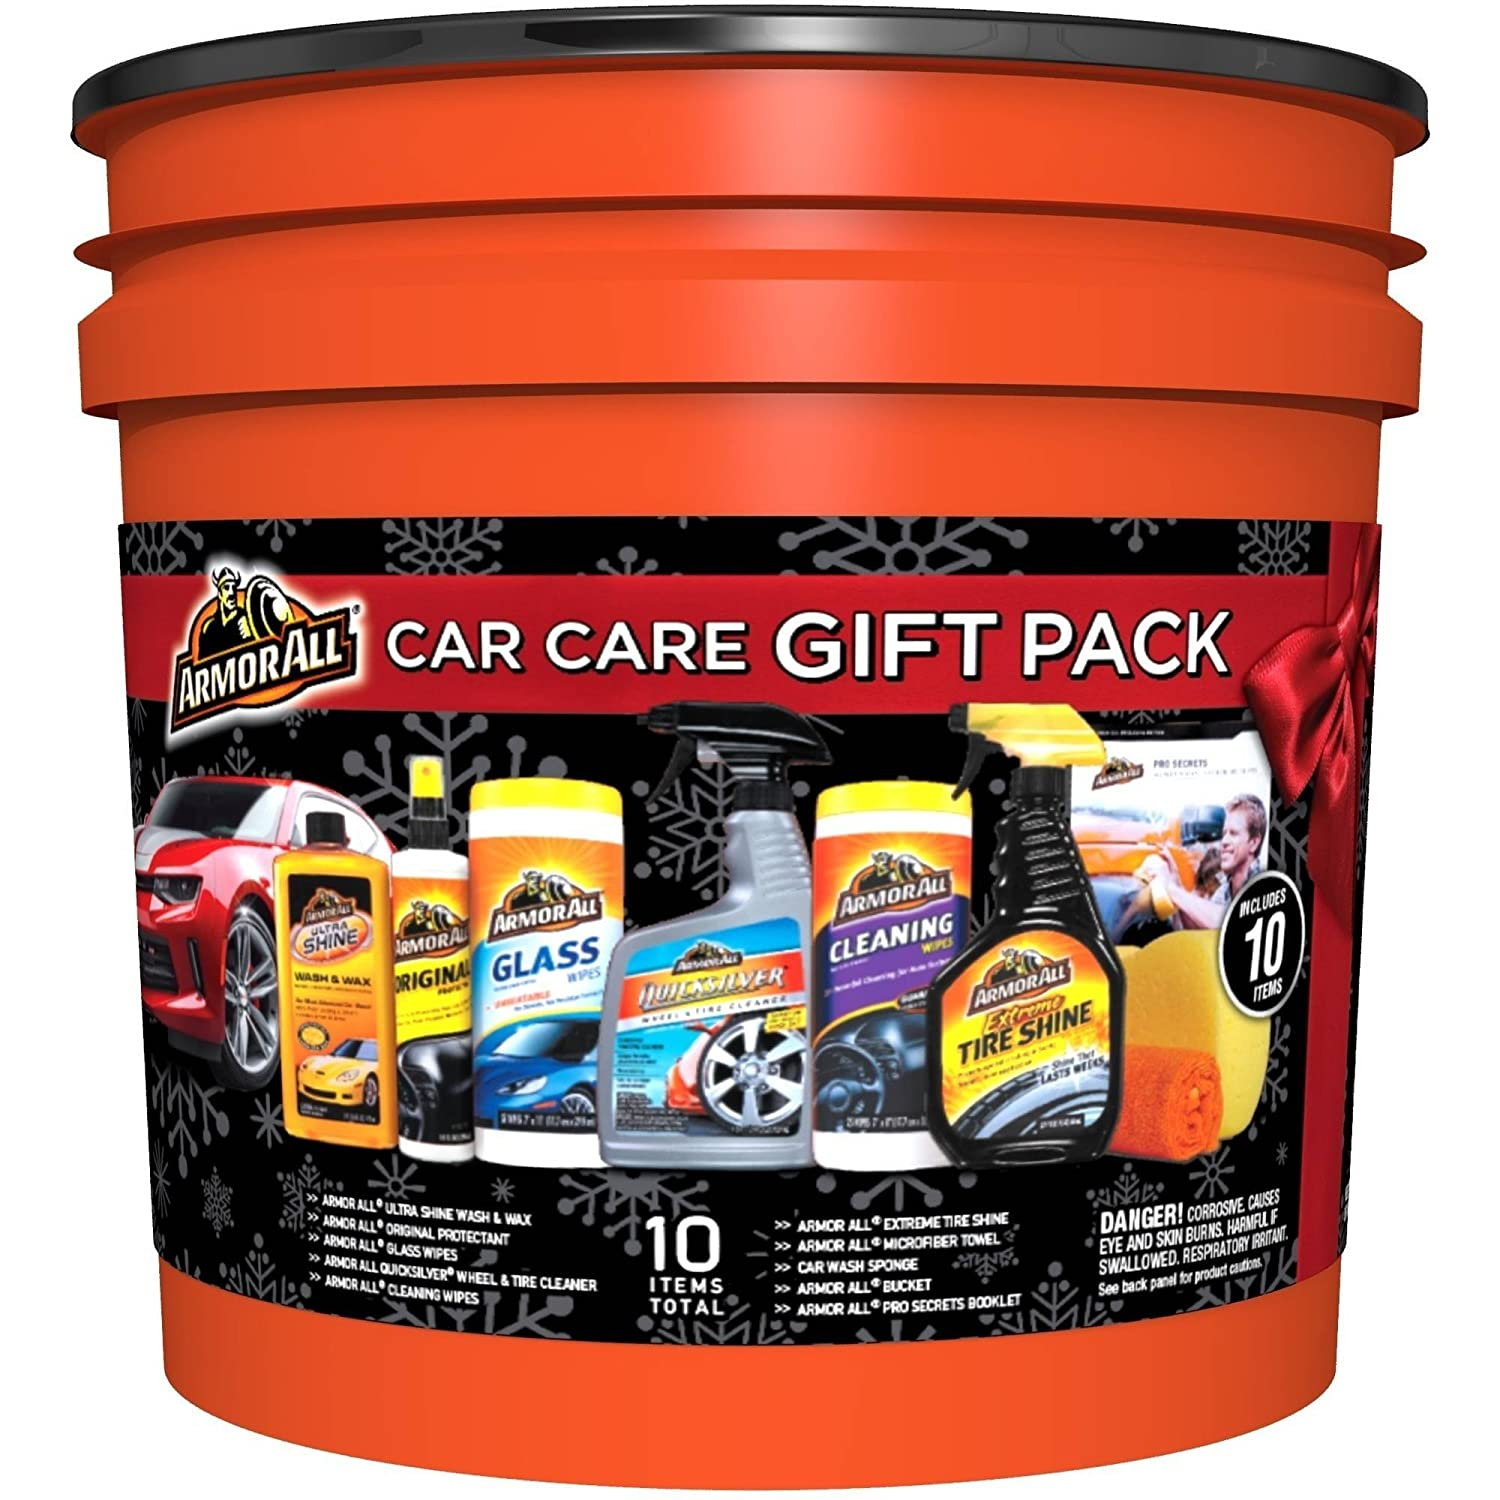 Armor All Complete Ultimate Car Care Gift Pack, Holiday Gift Pack, 10 Items